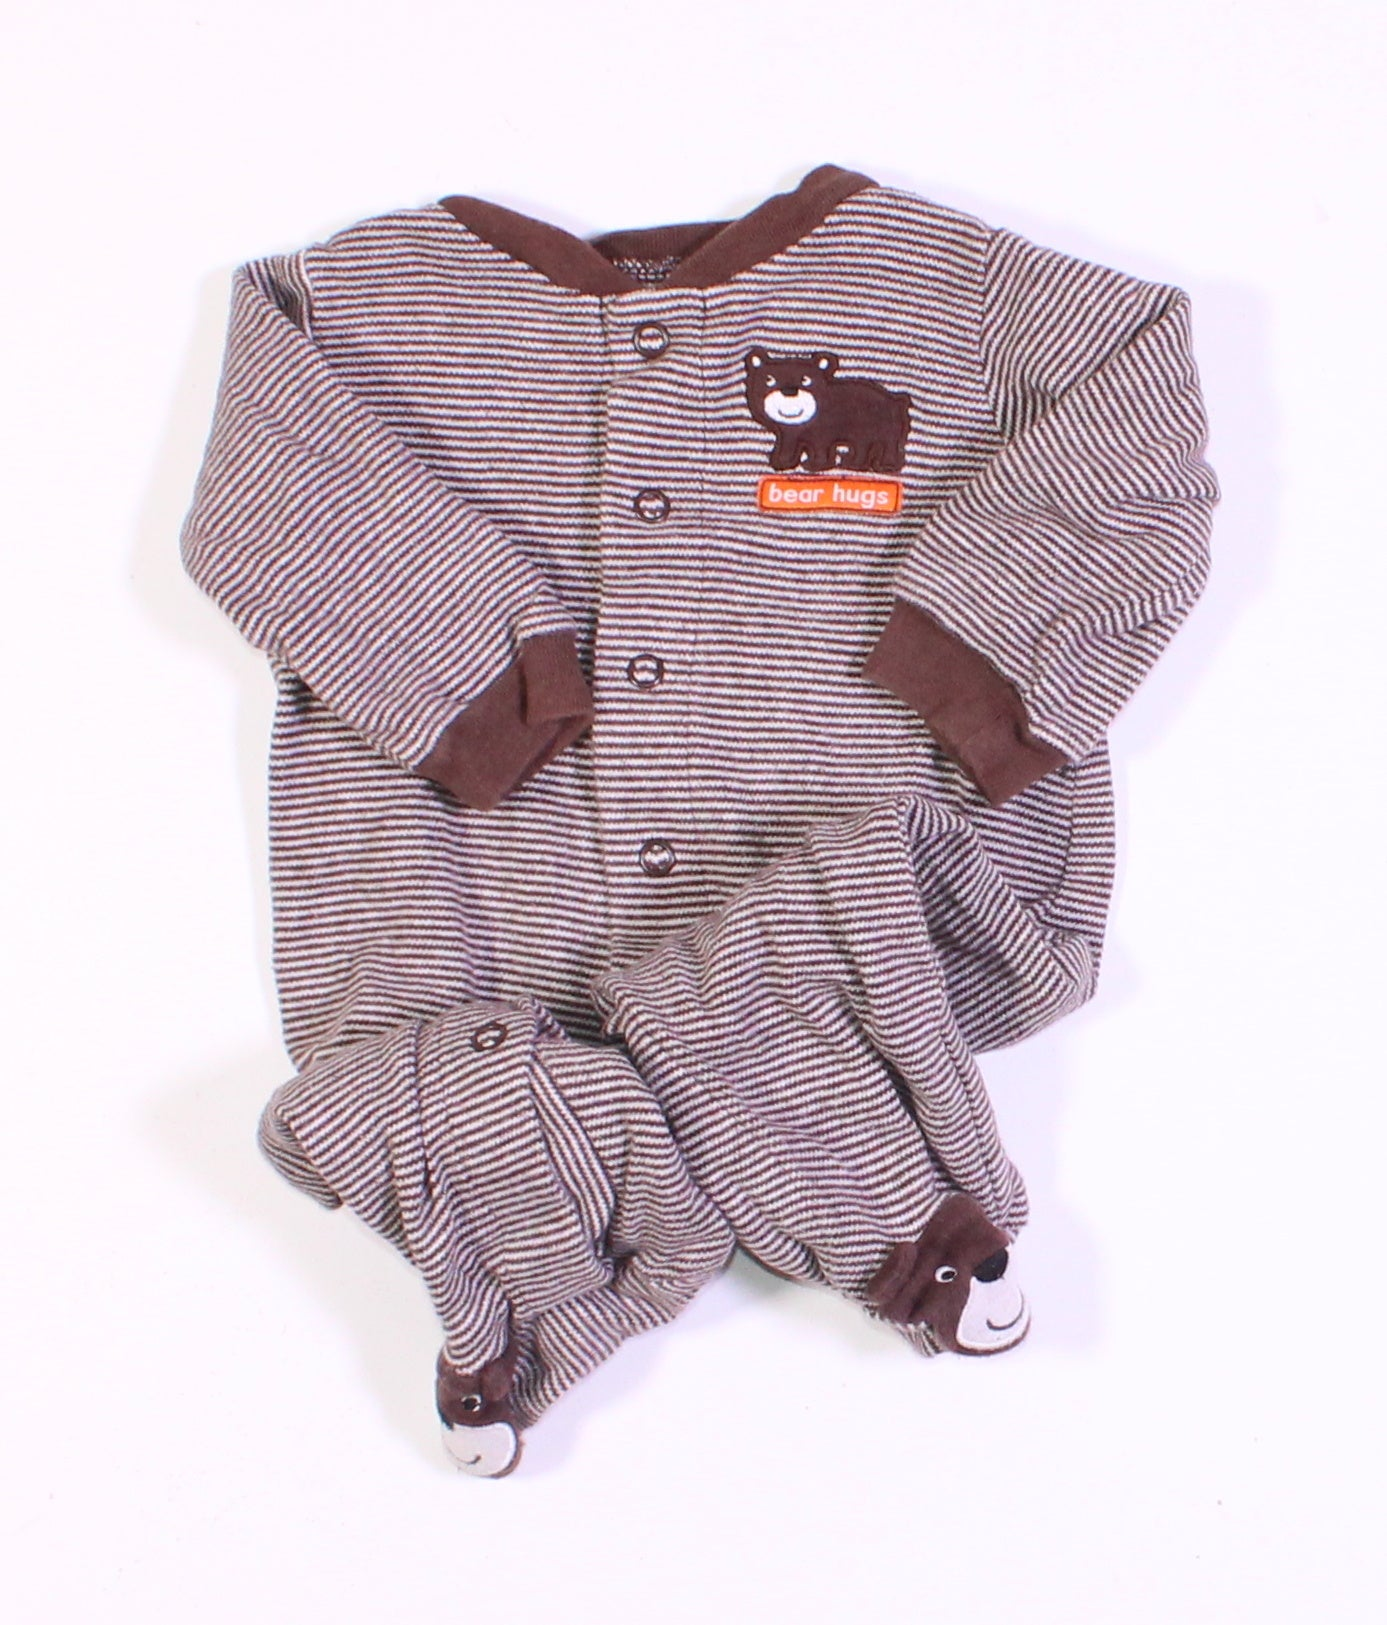 356266f35 BOYS 3-6 MONTHS* Page 2 - Betty's Consignment